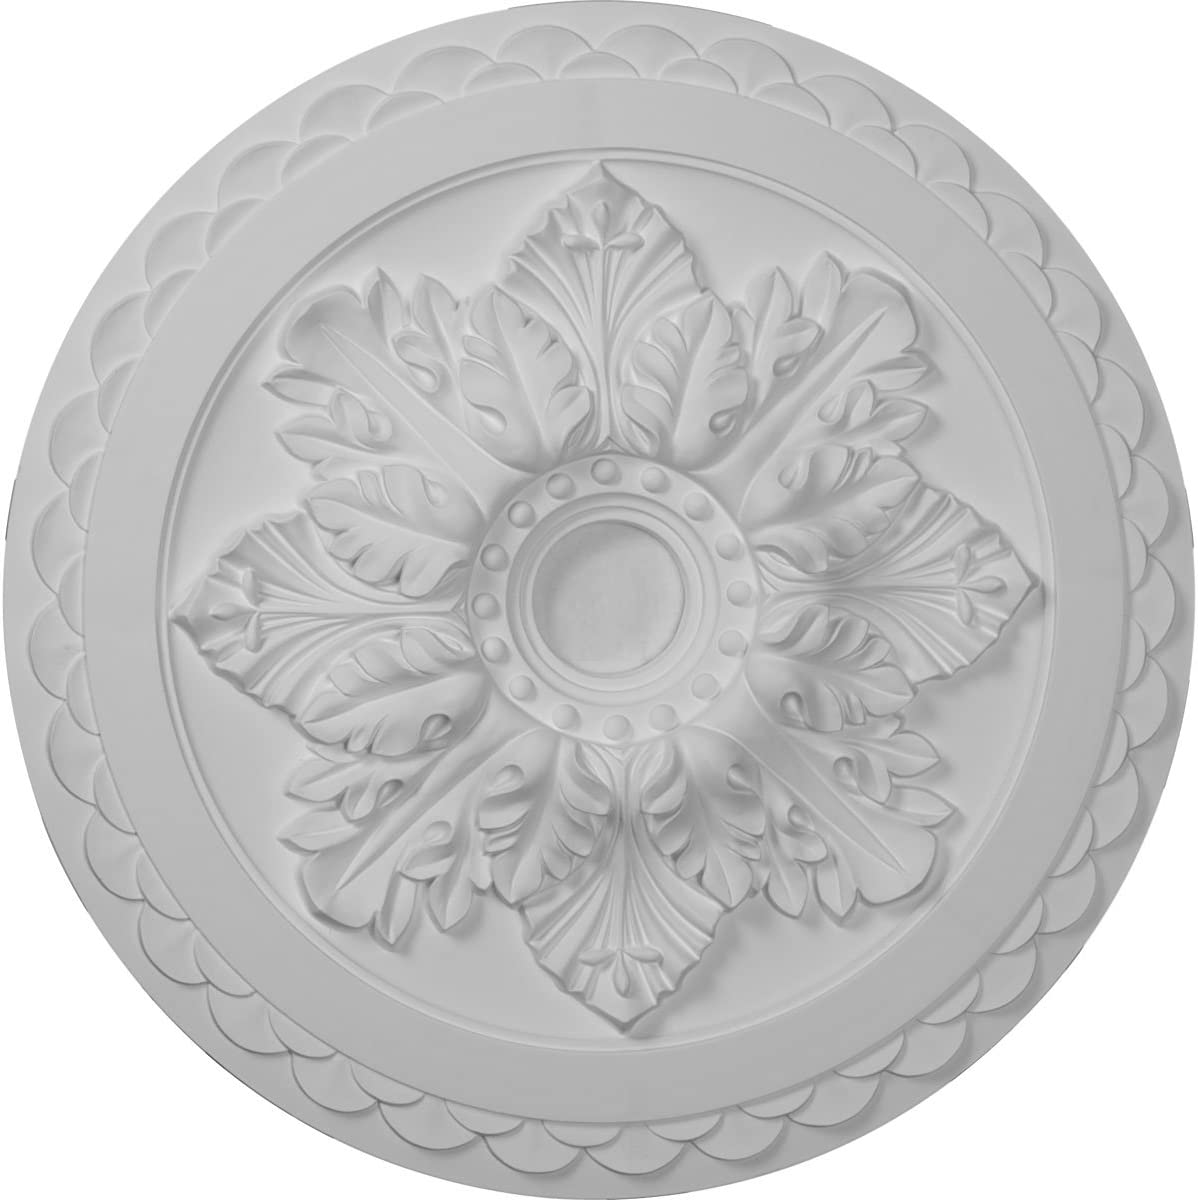 Ekena Millwork Cm23bo Bordeaux Deluxe Ceiling Medallion 23 5 8 Od X 3 Id X 2 P Fits Canopies Up To 4 Factory Primed Home Improvement